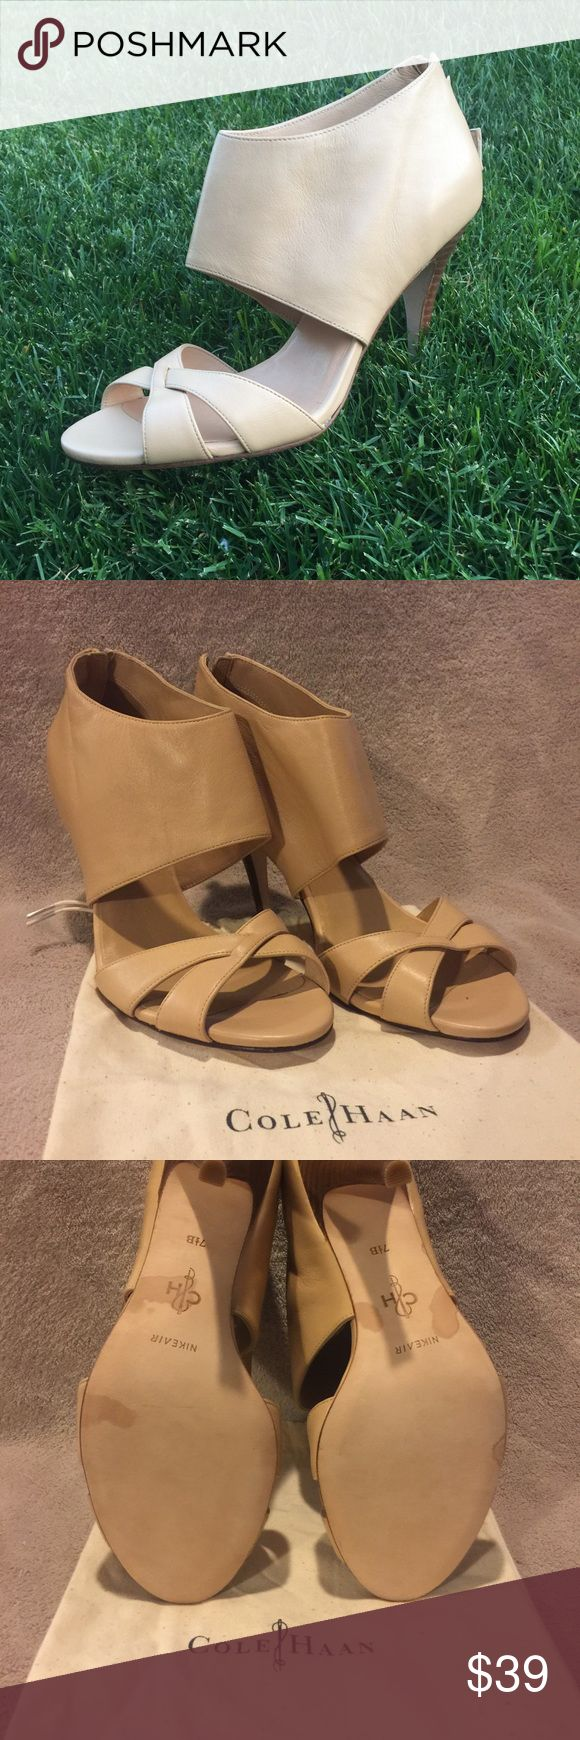 Cole Haan Tan Leather Zip Back Heels Authentic Cole Haan Tan leather heels with zip back heel. Never worn. Spots on soles are from Cole Haan leather treatment spray. Comes with original dust cover bags. Cole Haan Shoes Heels